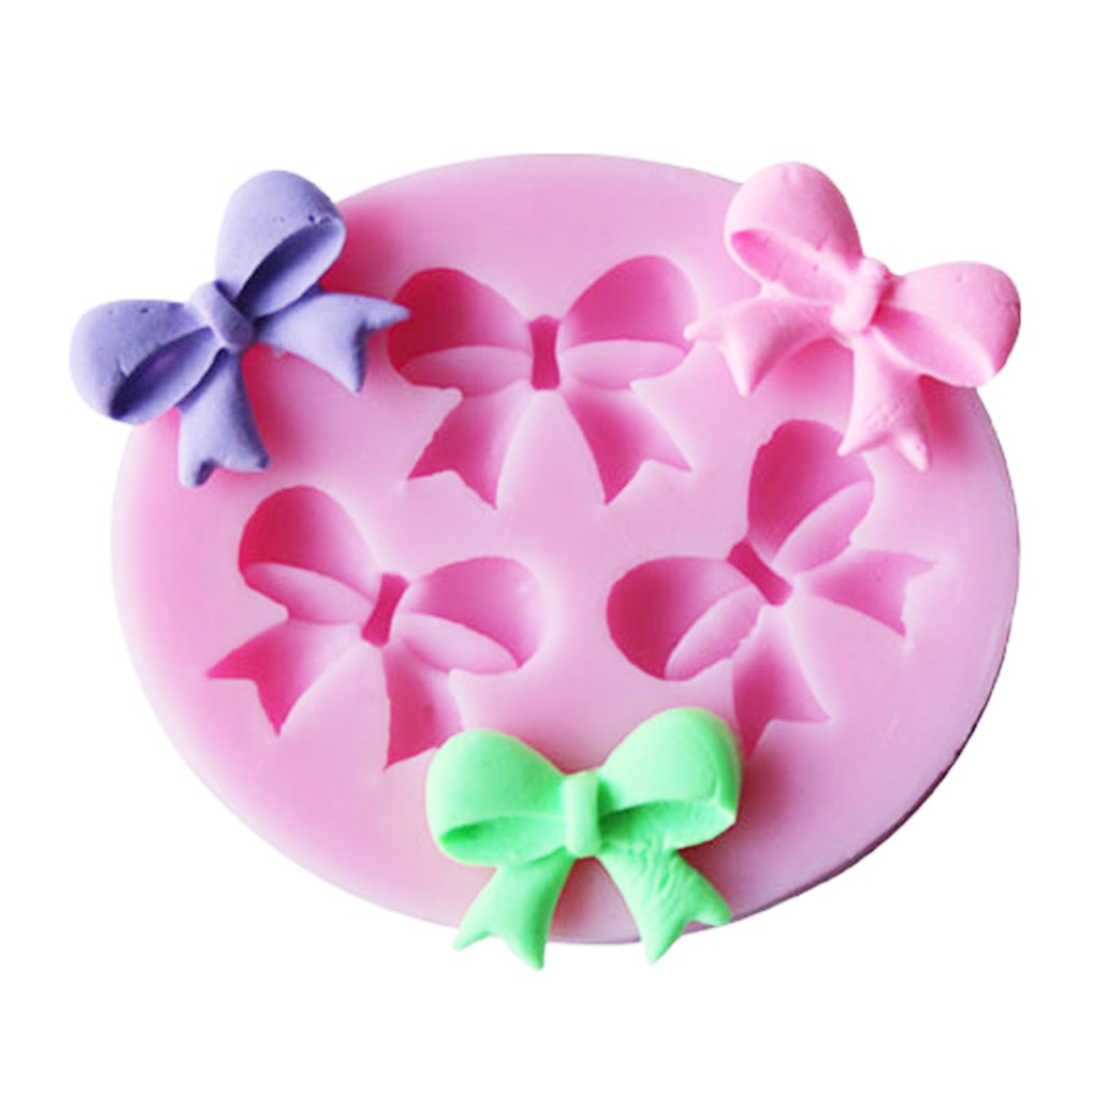 1pc Cake Mold Bowknots Flower 3D Fondant Mold Silicone Cake Decorating Tool Chocolate Soap Stencils Kitchen Baking Accessories